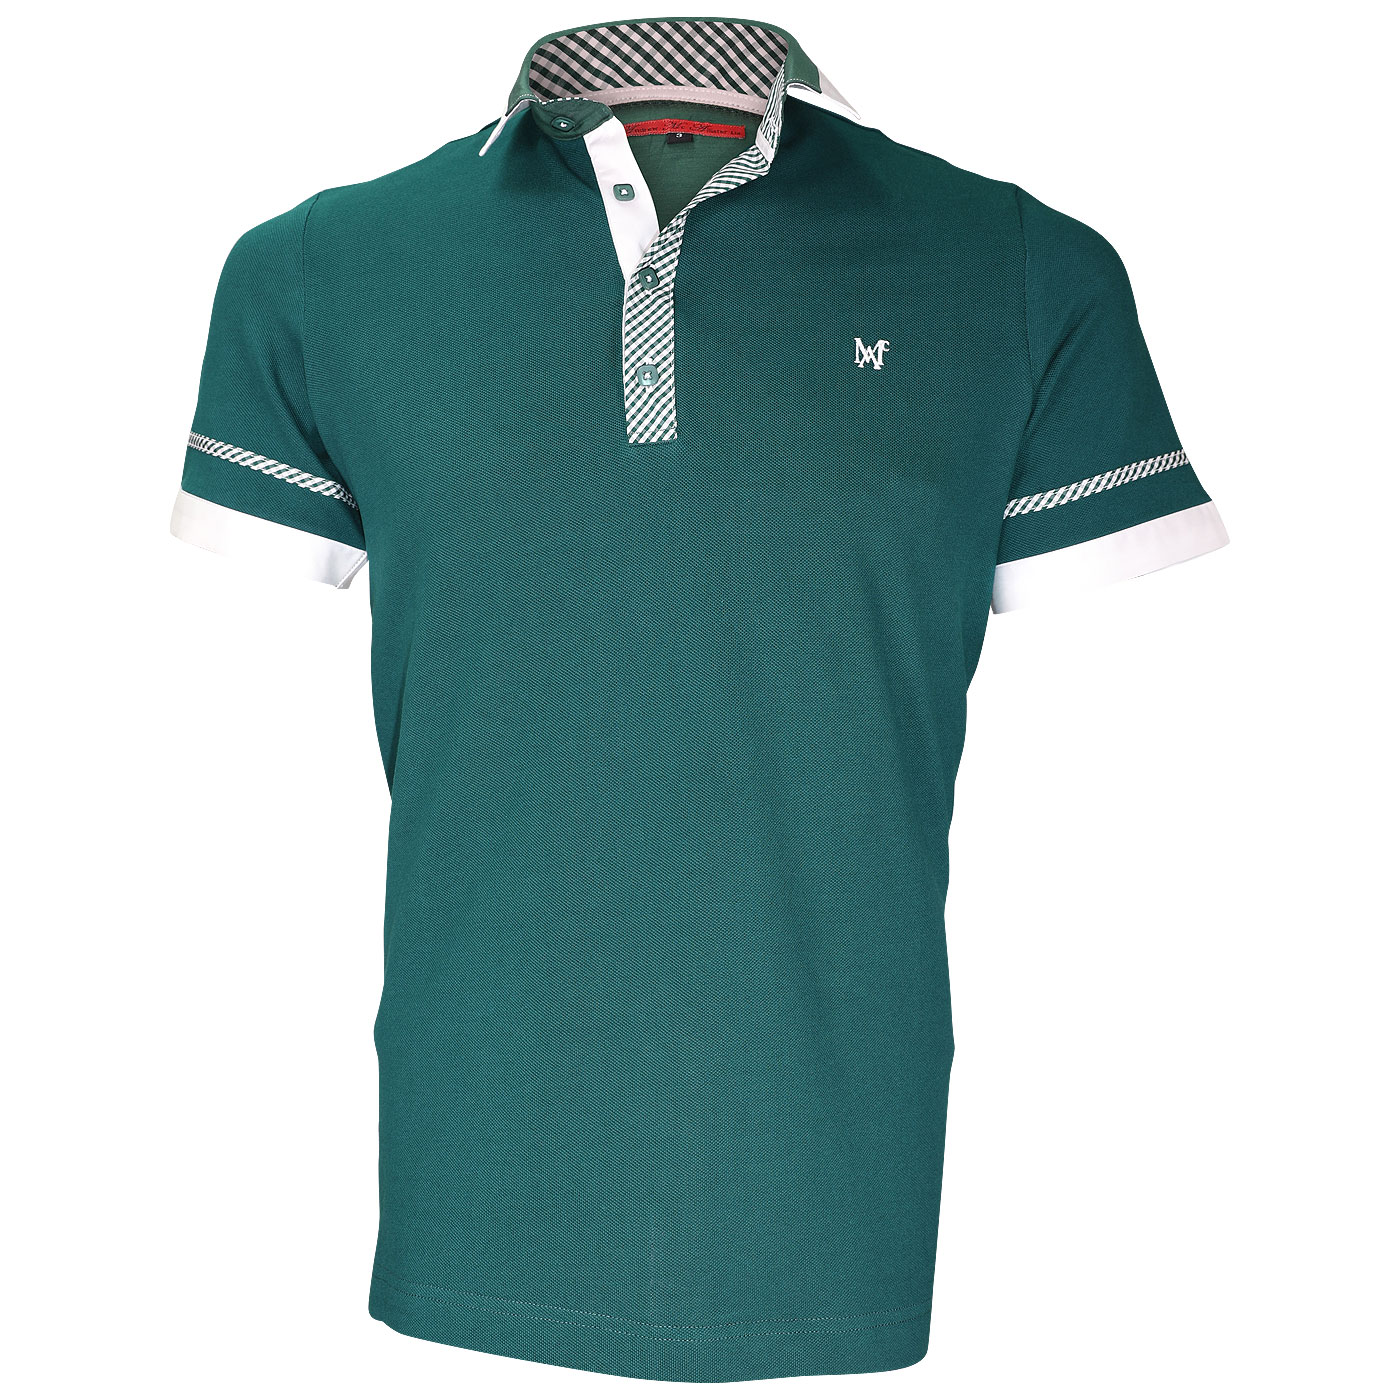 Men's Short Sleeve Polo Shirt Delivered 48H on Webmenshirt